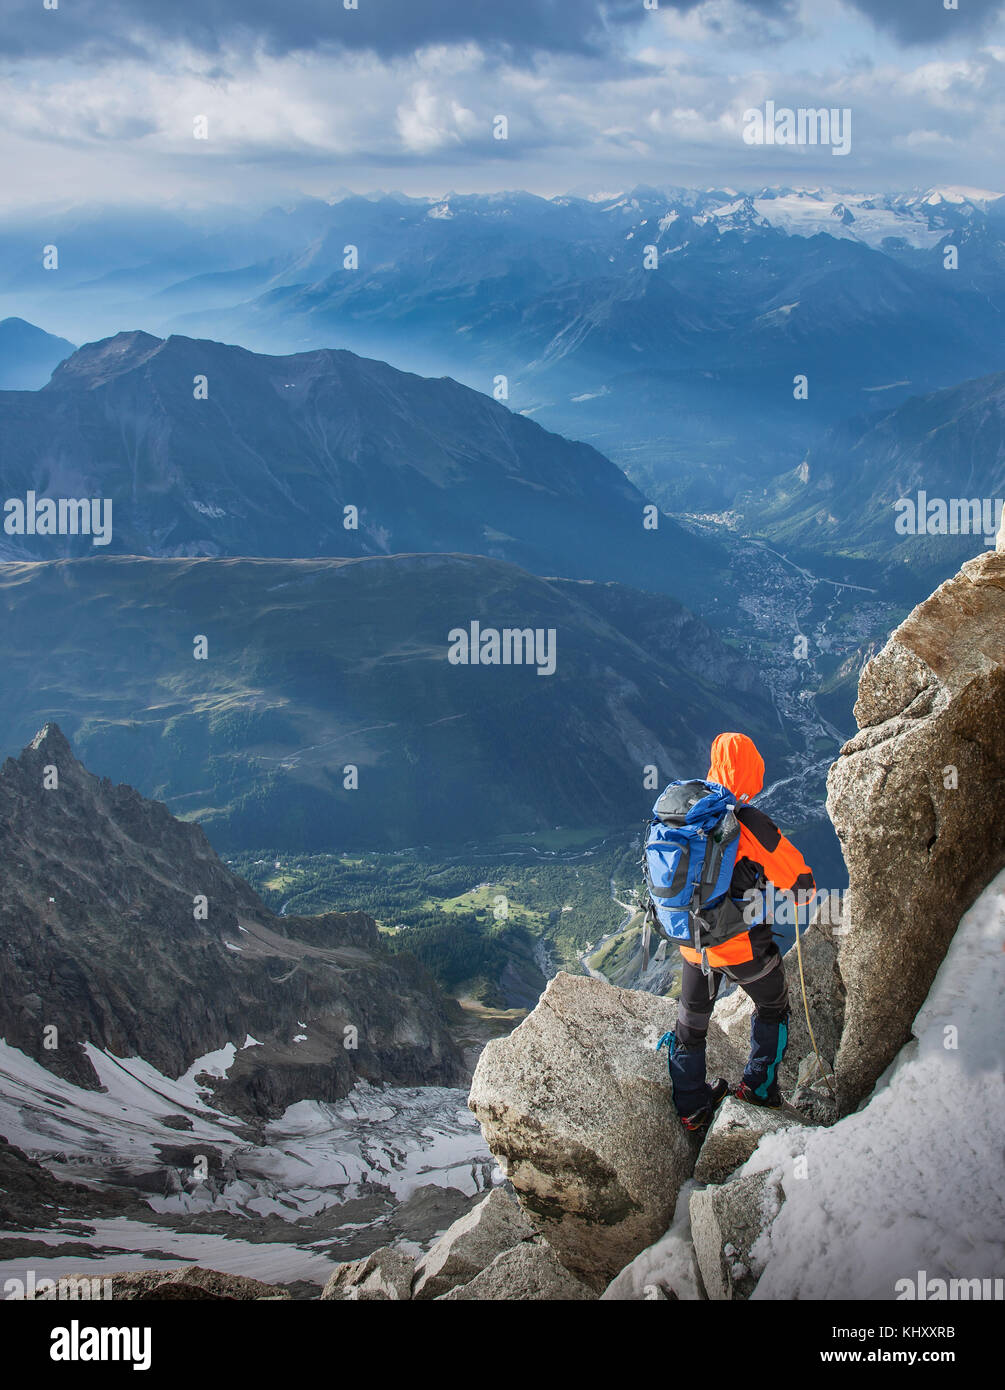 Mountain climber descending the Dent du Geant, in the Mont Blanc Massif, Courmayeur, Aosta Valley, Italy, Europe Stock Photo